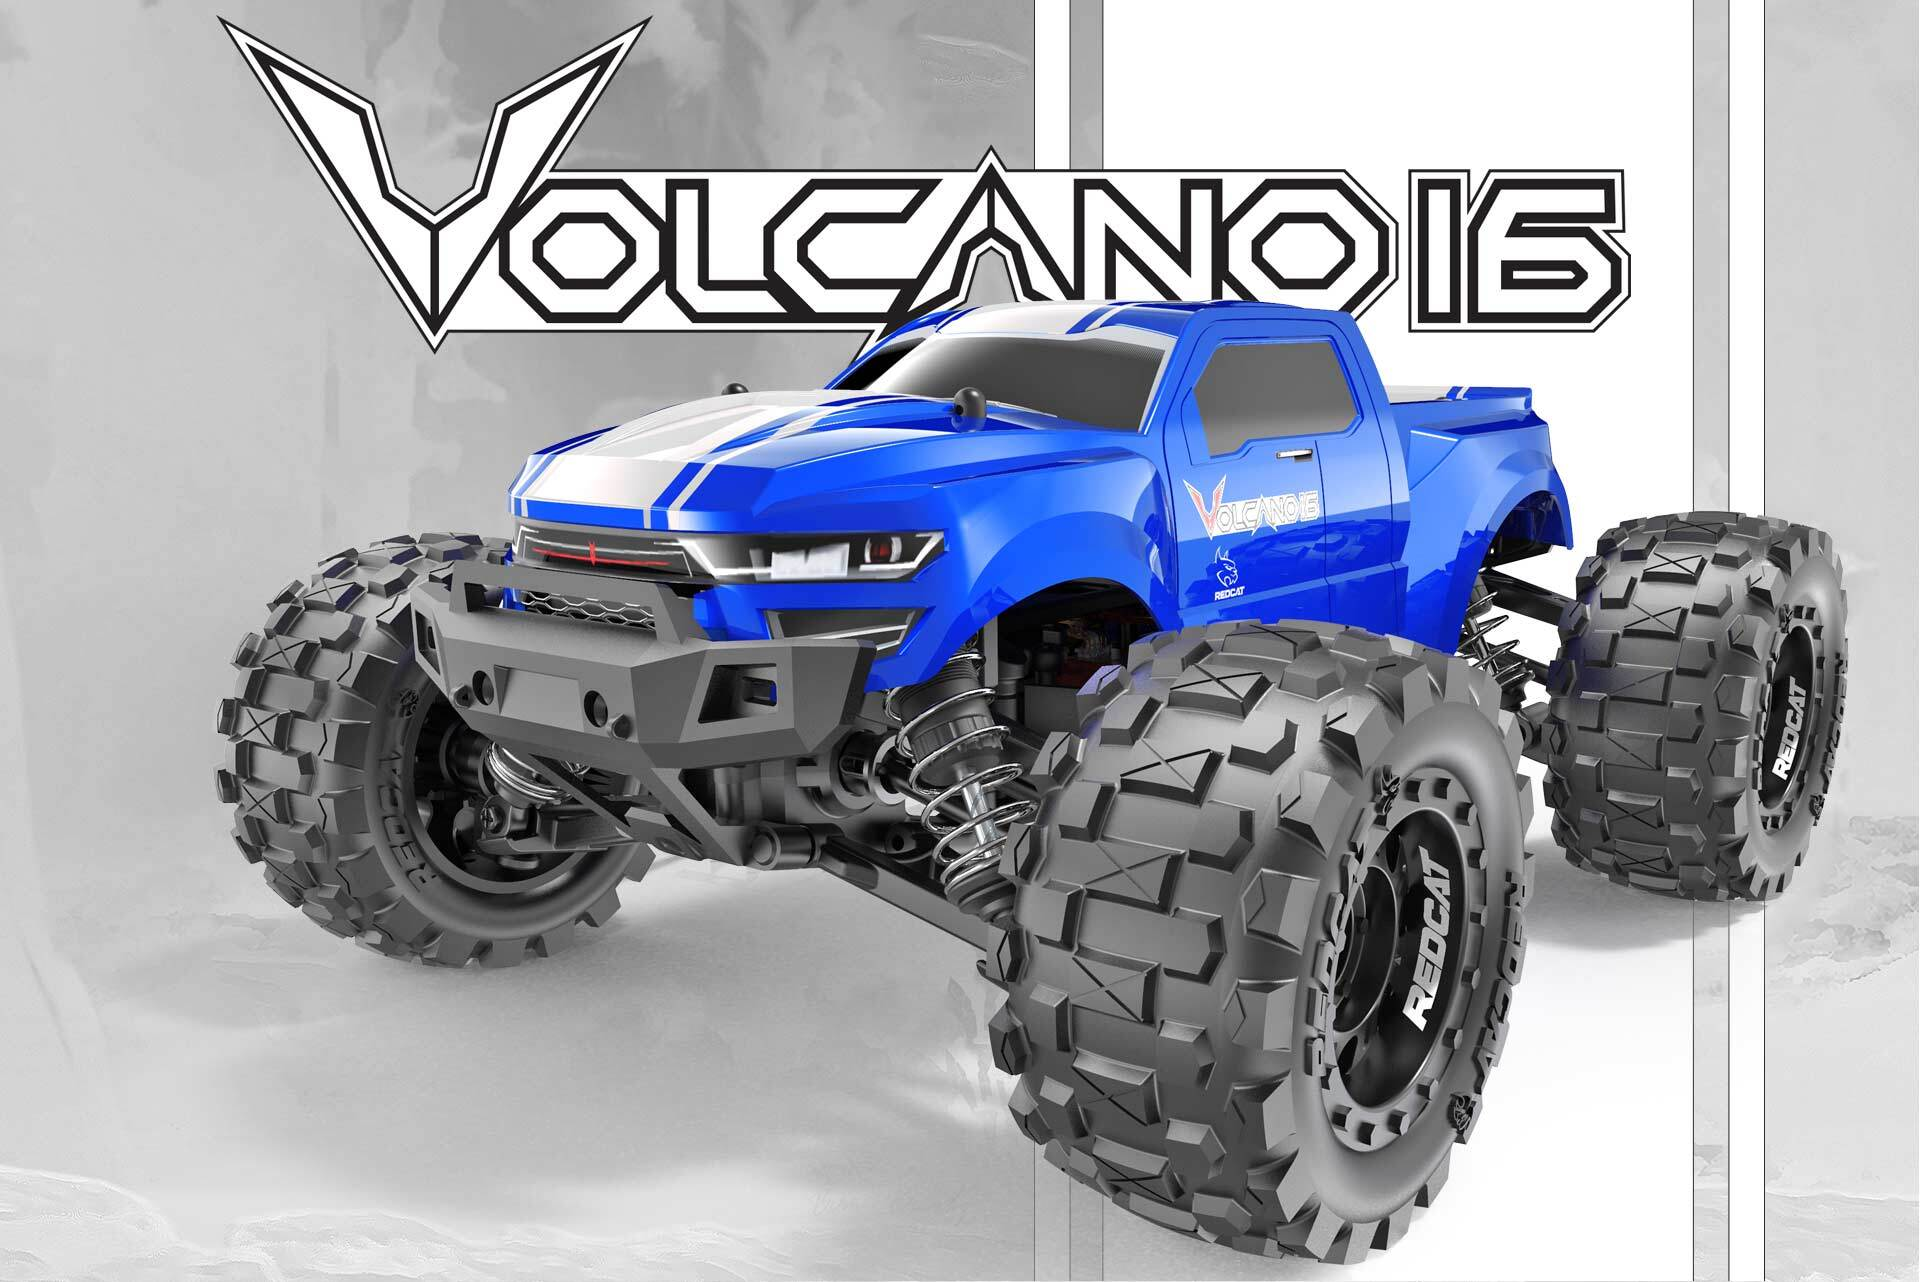 Save $10 on the Redcat Volcano-16 Through March 15 (2021)